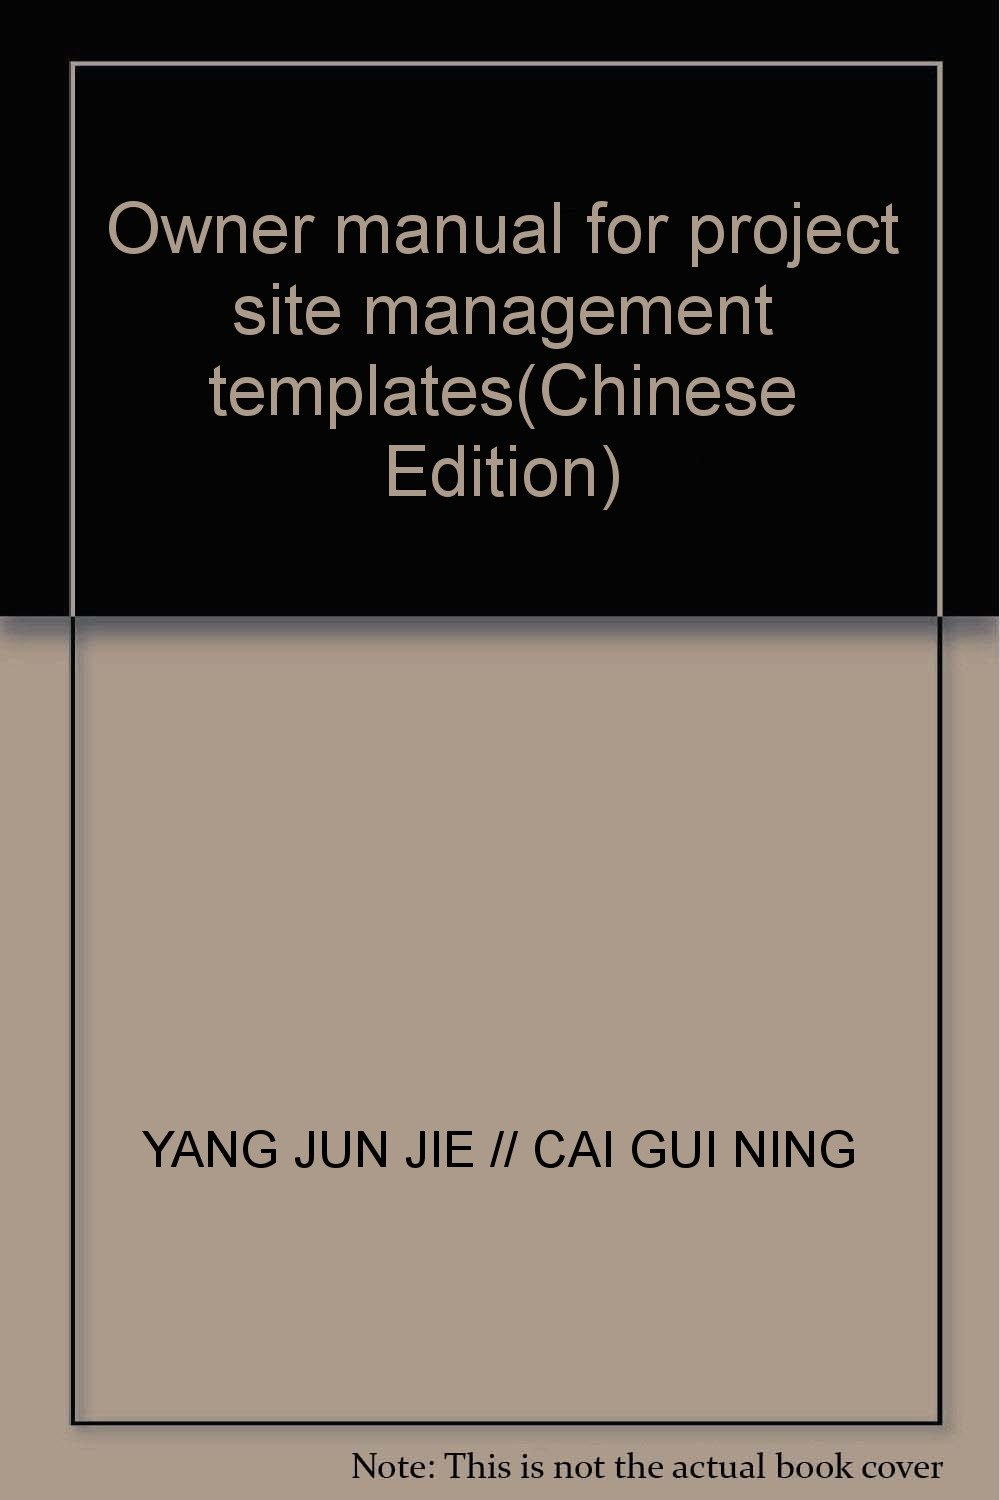 Owner manual for project site management templates(Chinese Edition) pdf epub